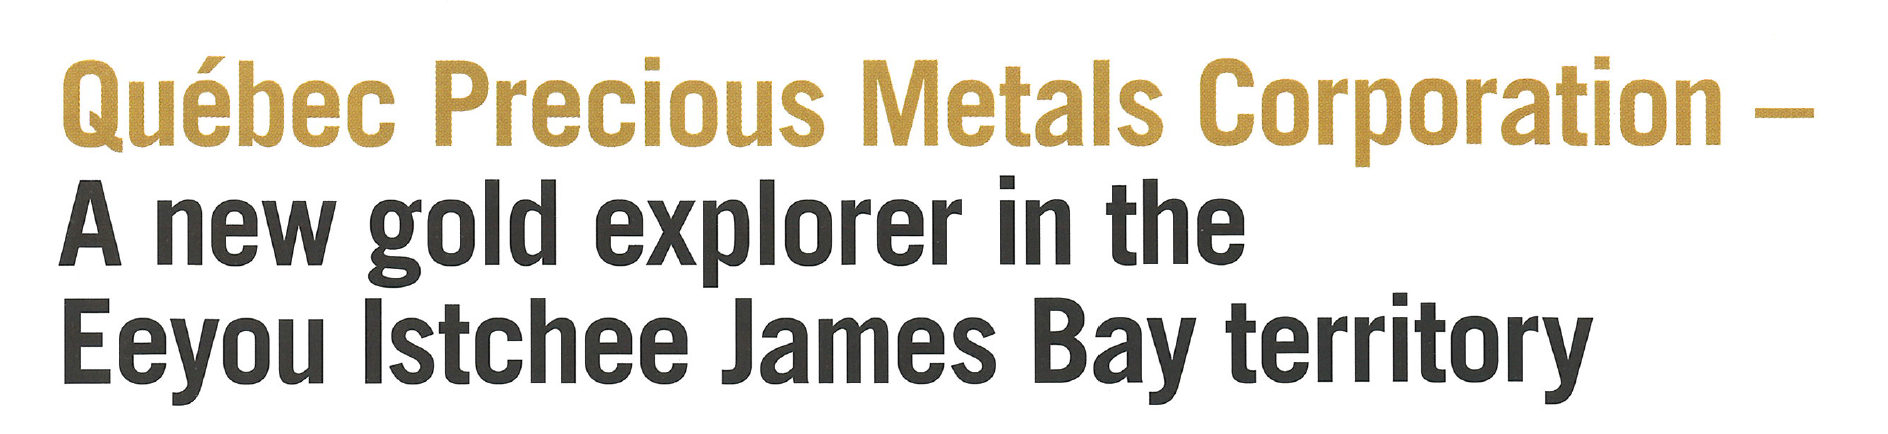 Quebec Precious Metals Corporation - A new gold explorer in the Eeyou Istchee James Bay territory